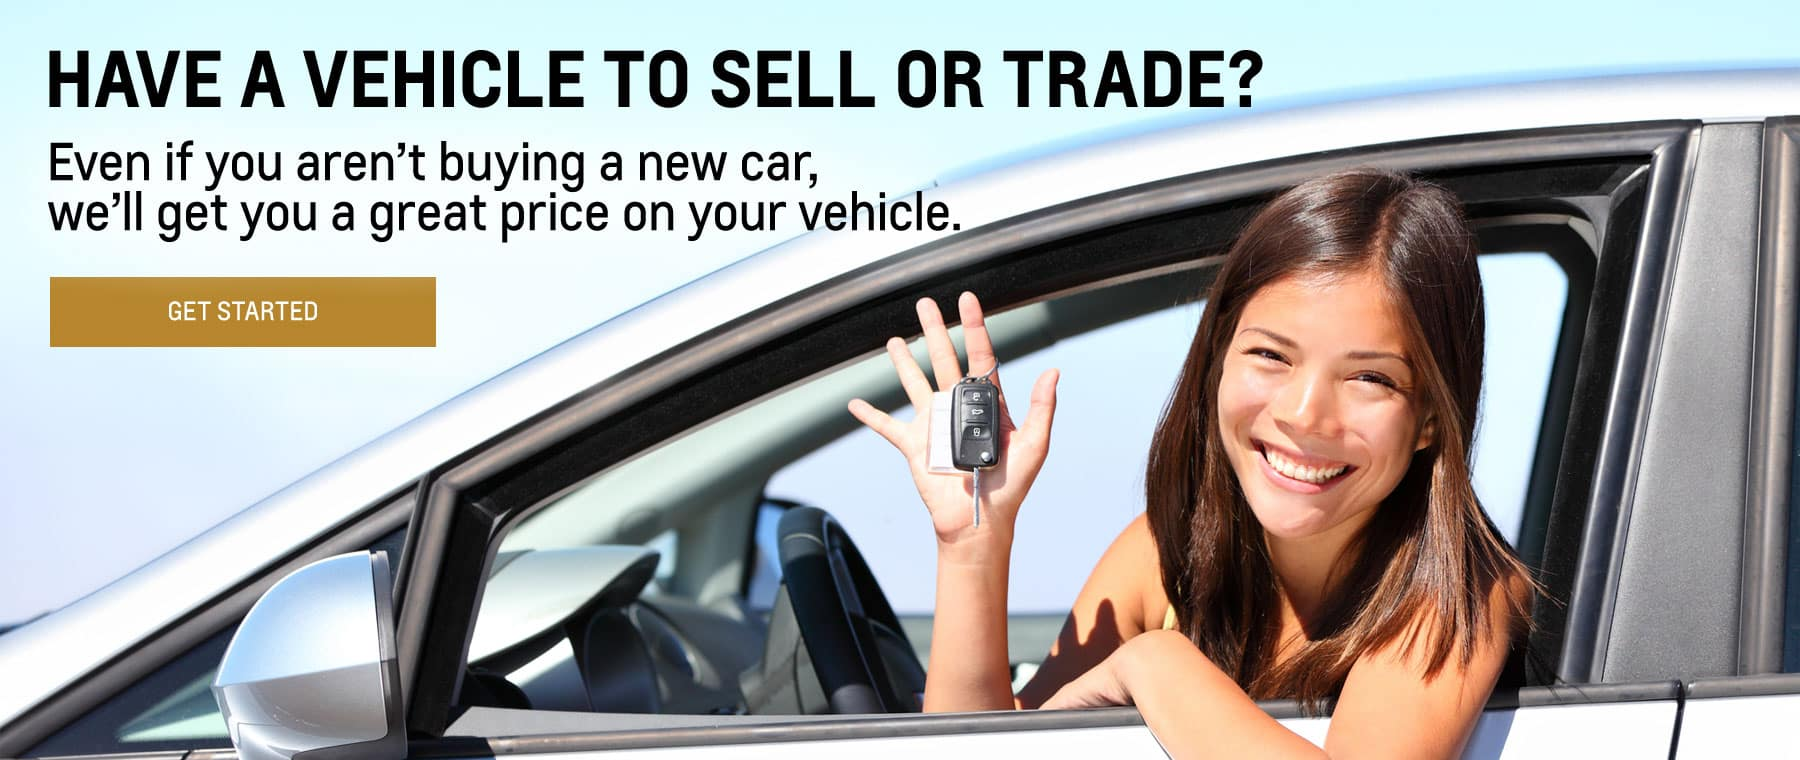 CON_Sell-Your-Car_Hero